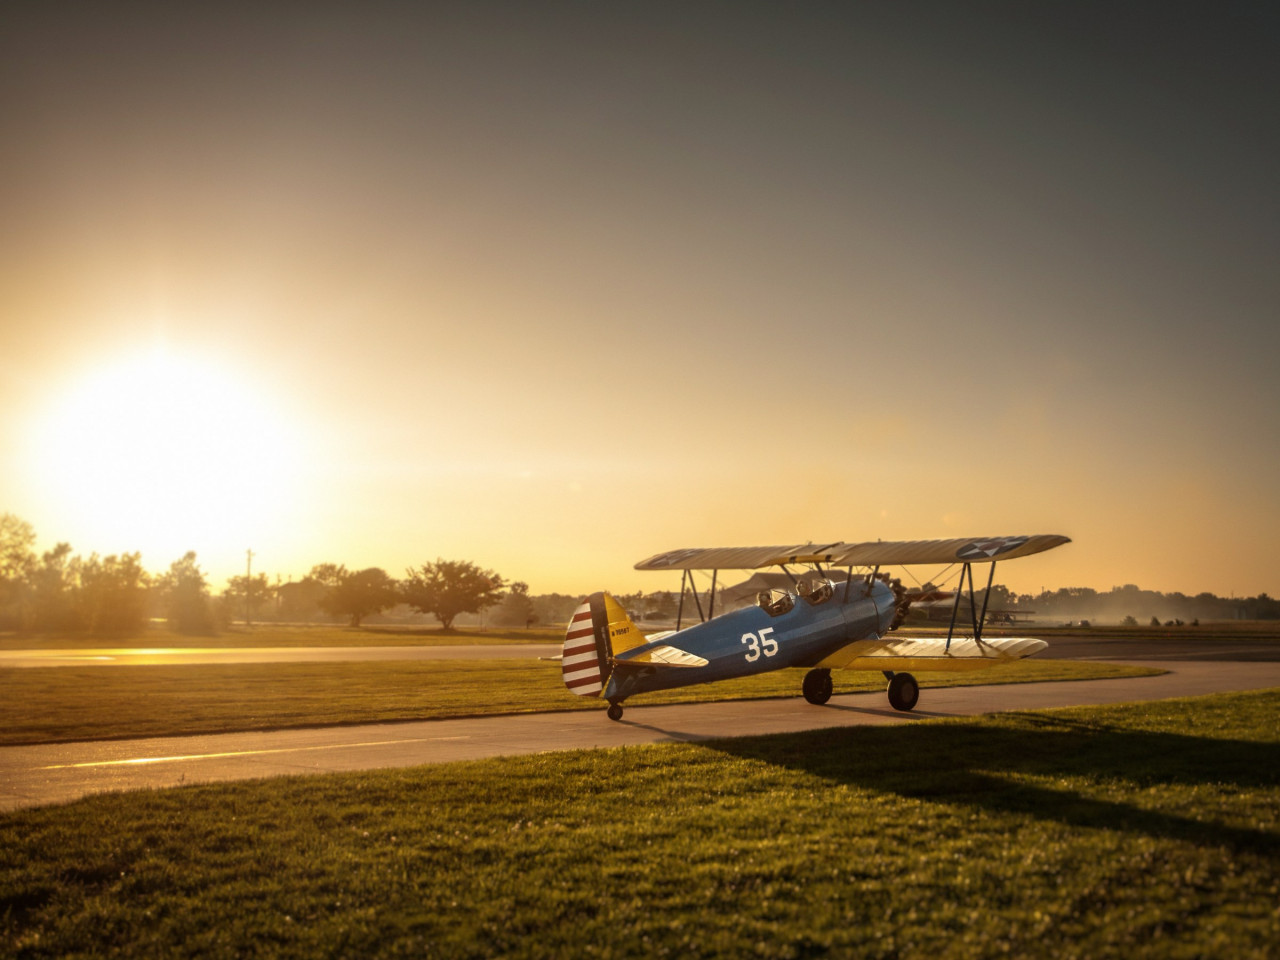 Boeing Stearman Airplane wallpaper 1280x960